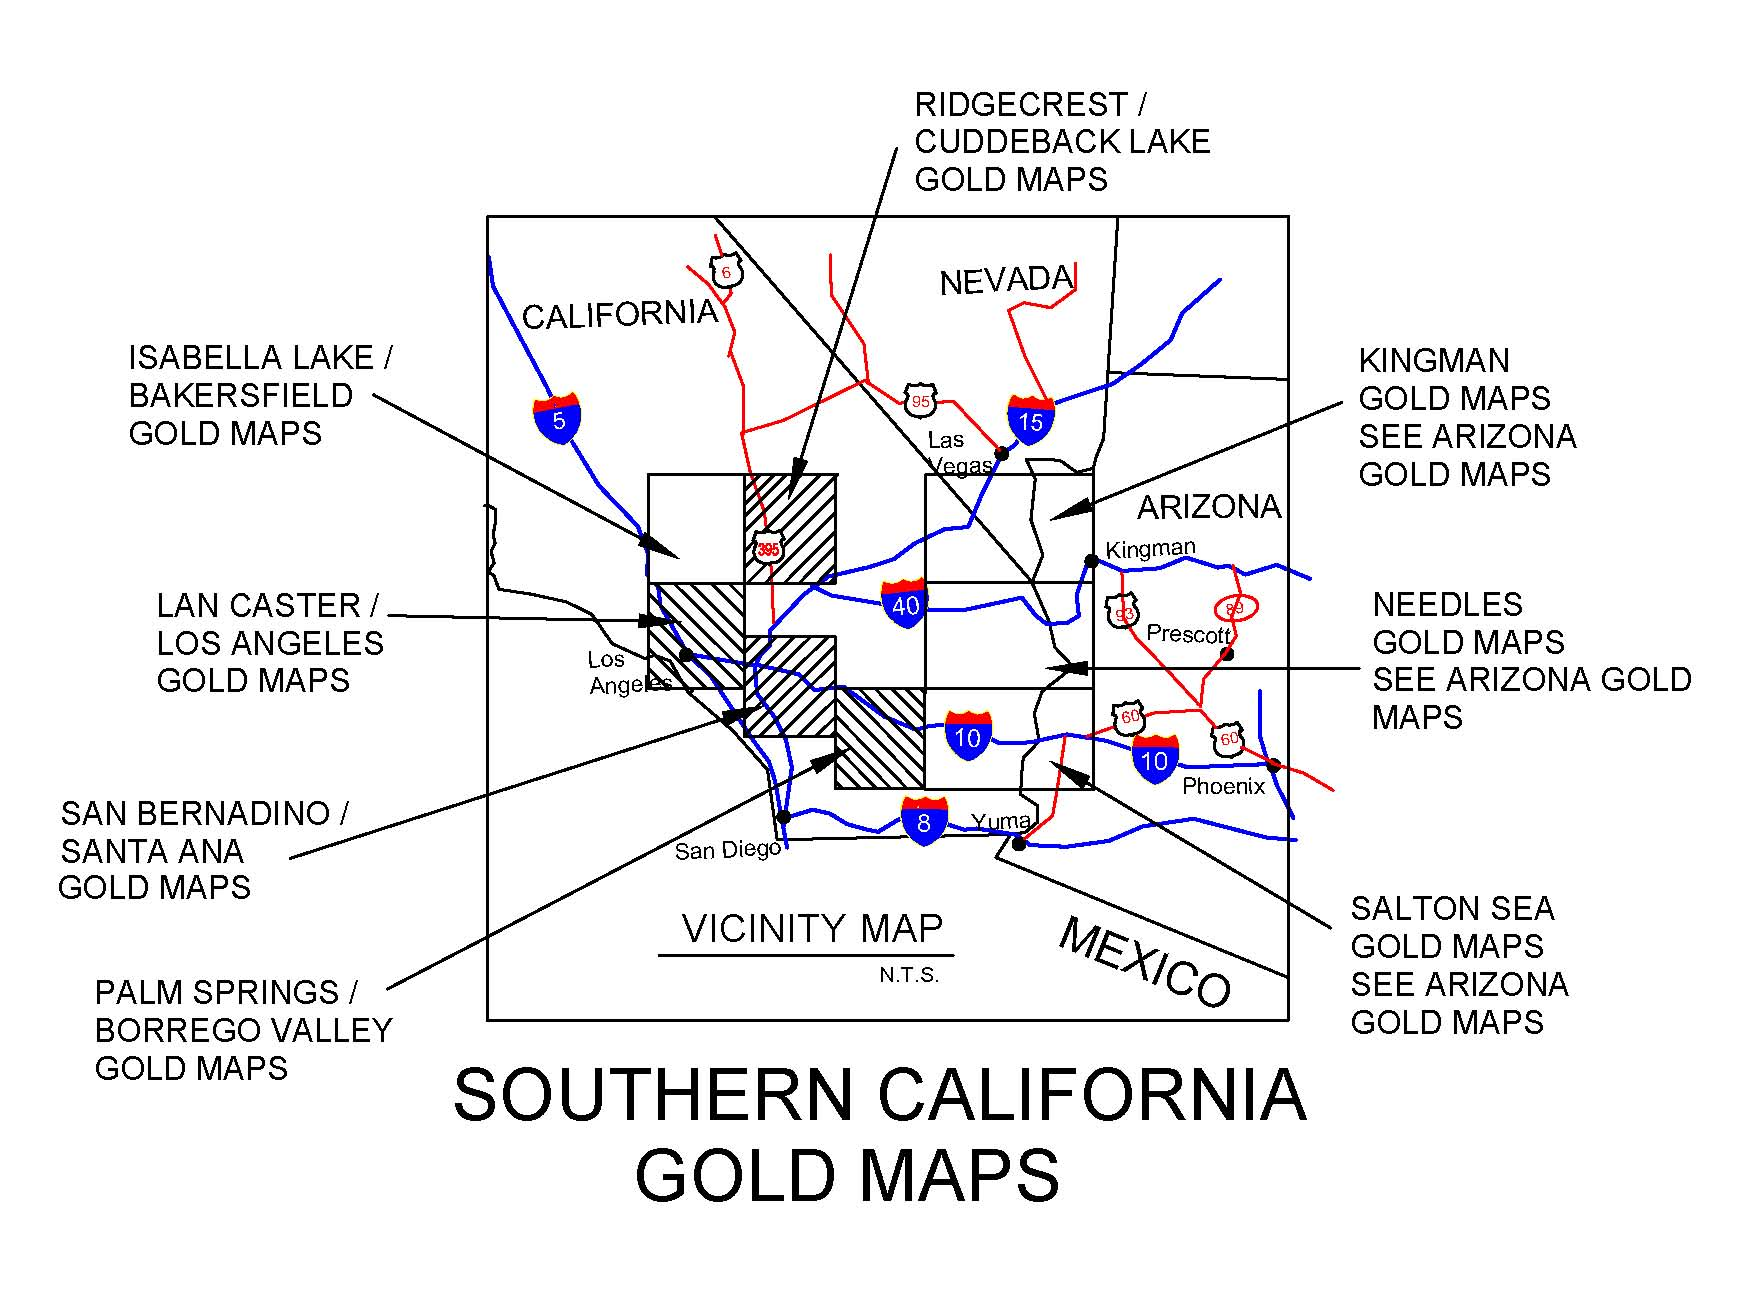 California Map Southern Ca.California Gold Maps Treasure Maps Gold Panning Maps Gold